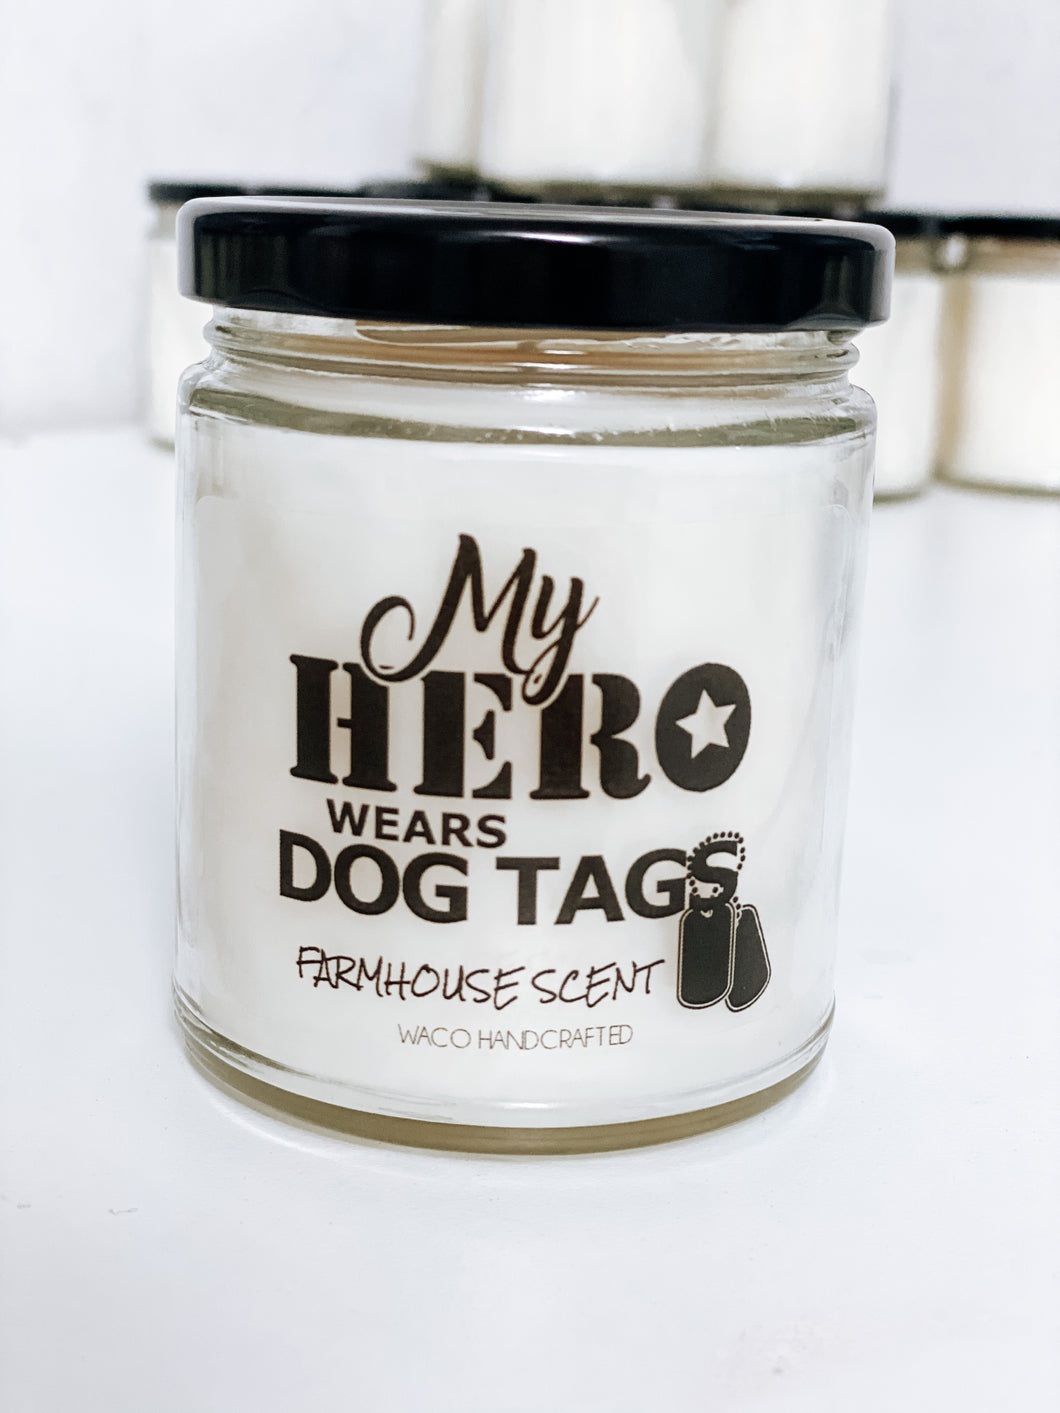 My Hero Wears Dog Tags Scented Candle | 9 oz or 16 oz | - Waco Handcrafted